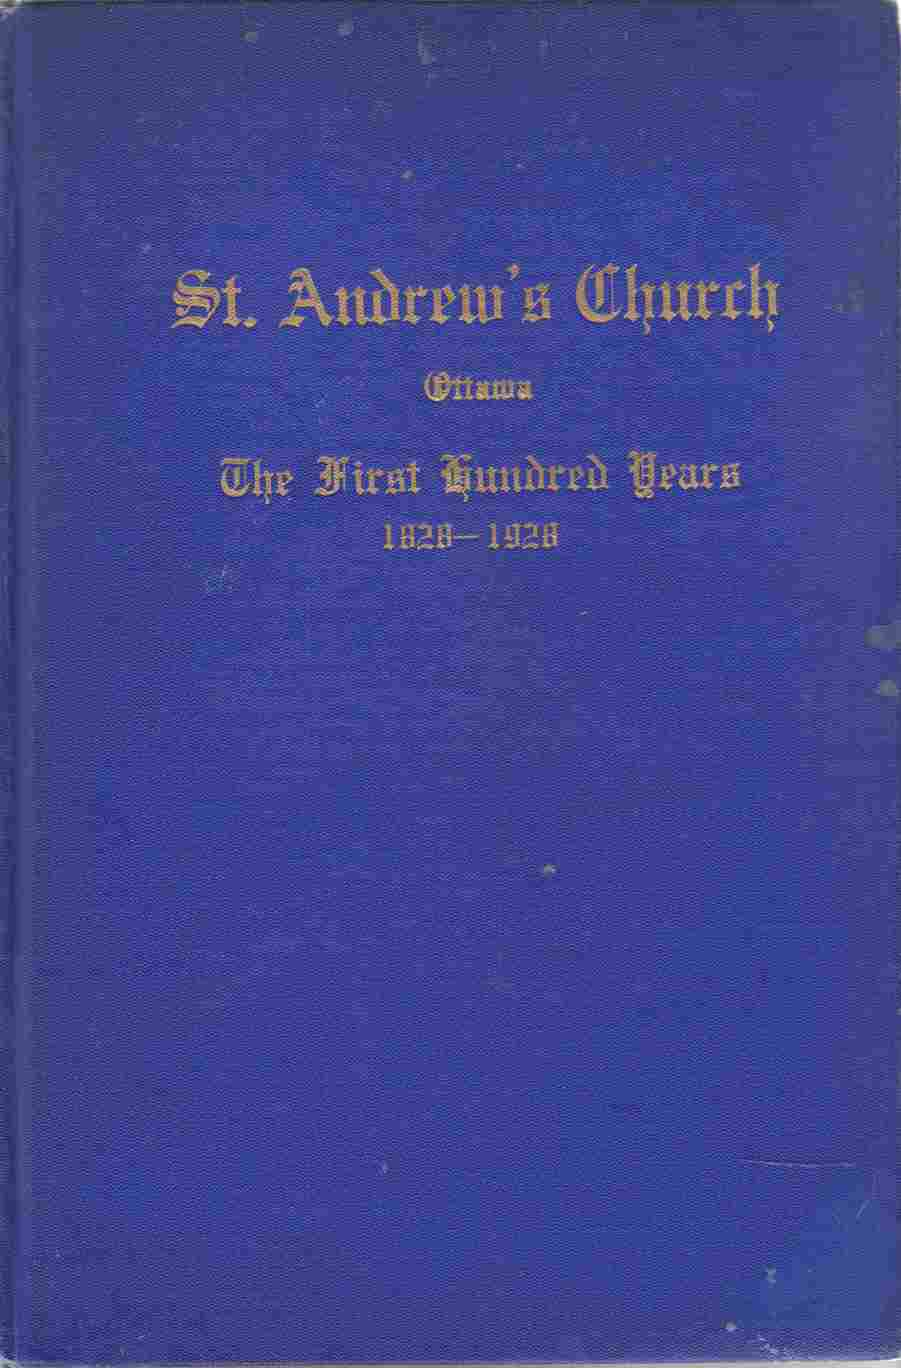 Image for St. Andrew's Church, Ottawa The First Hundred Years 1828 - 1928